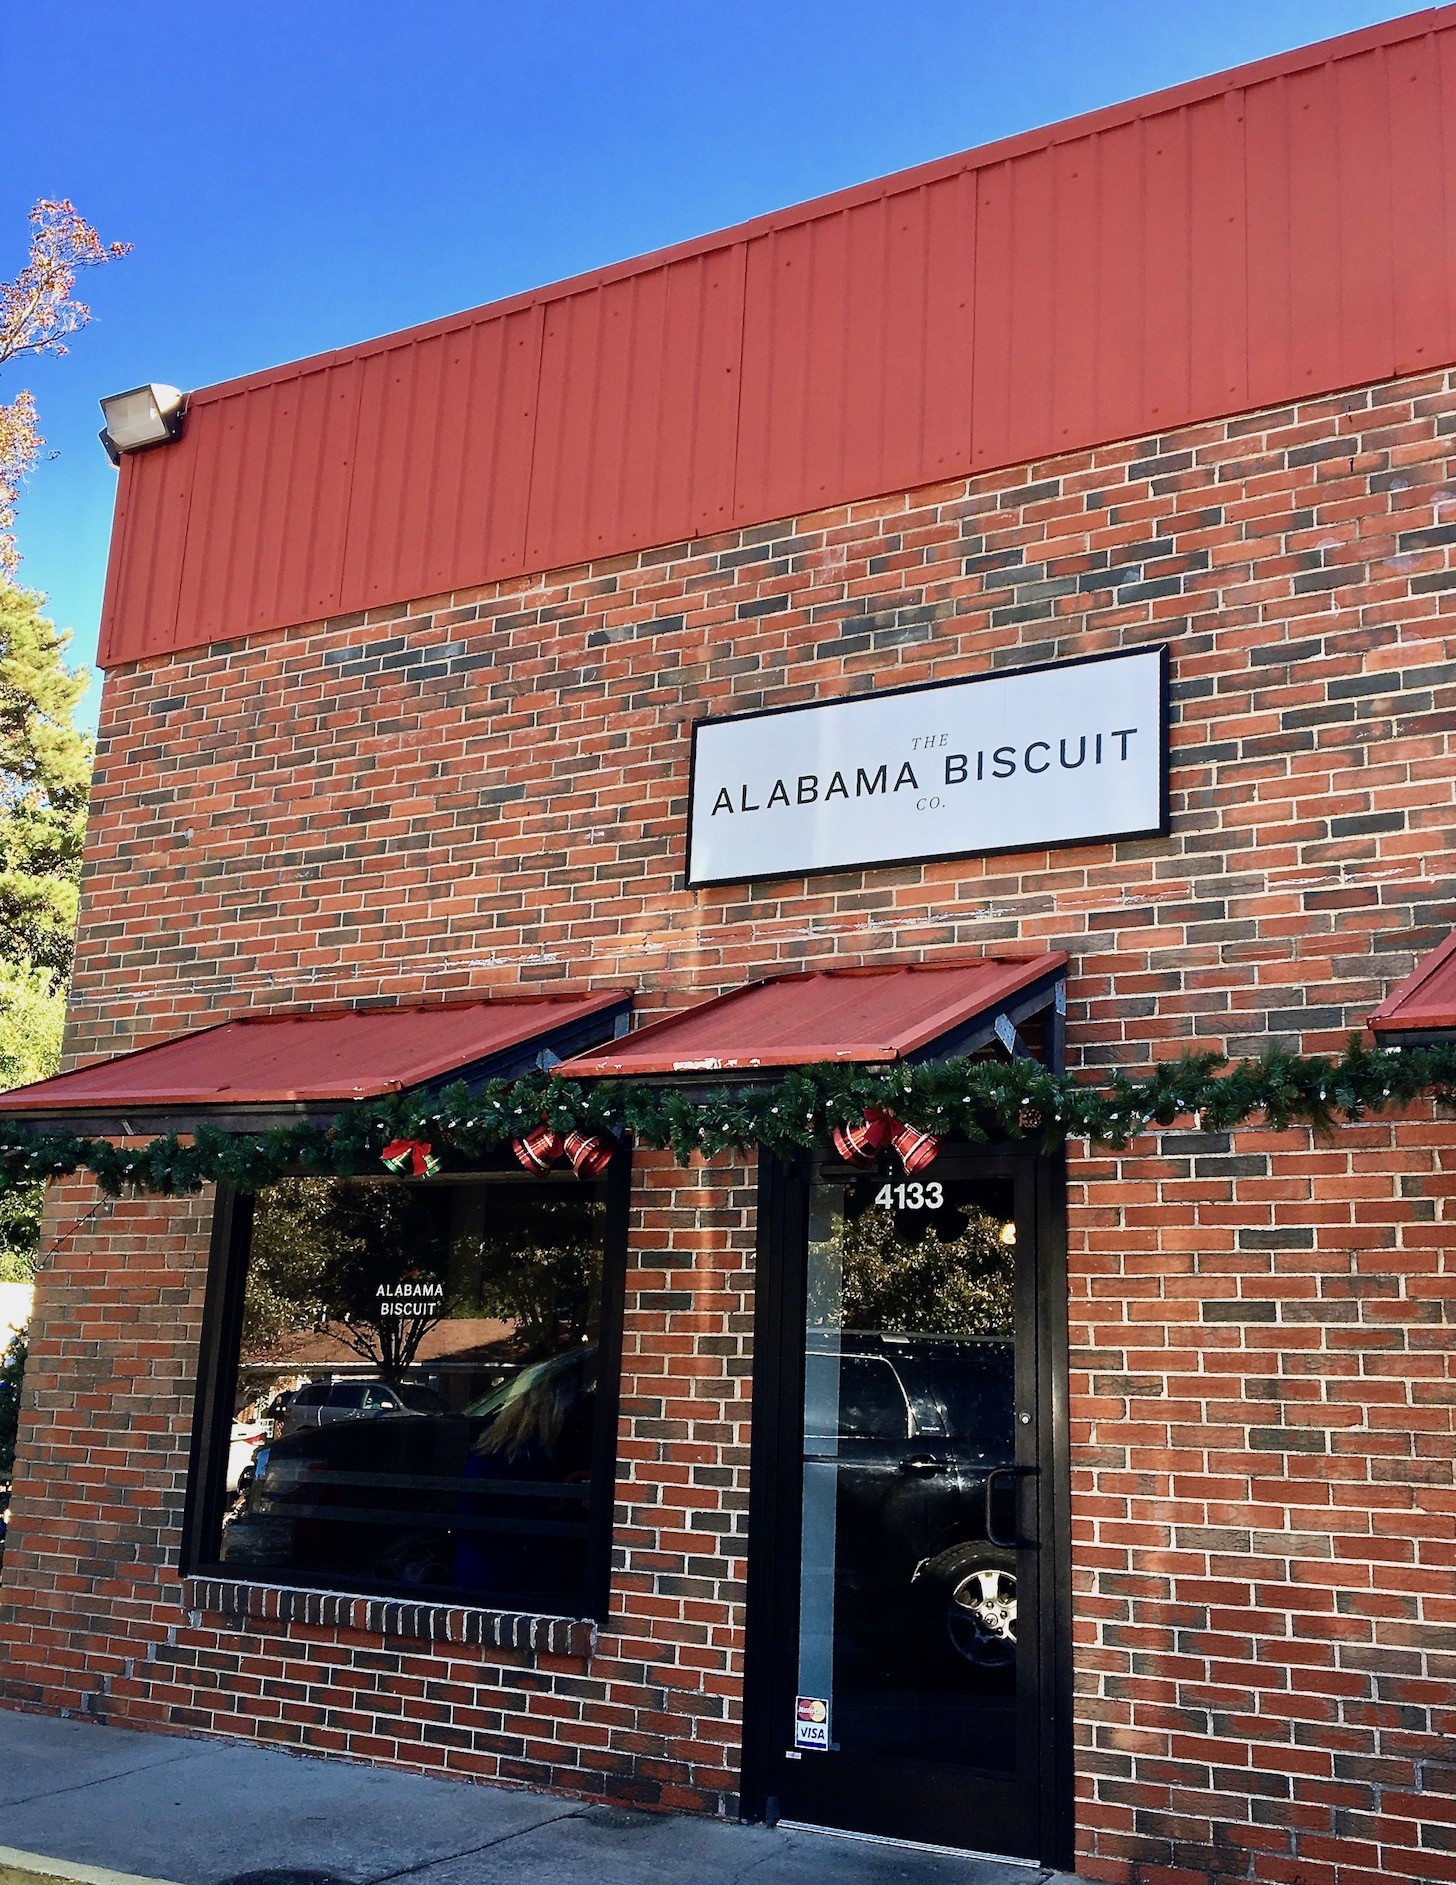 Go visit the Alabama Biscuit Company for the best biscuits in the south. Located in Birmingham, Alabama.